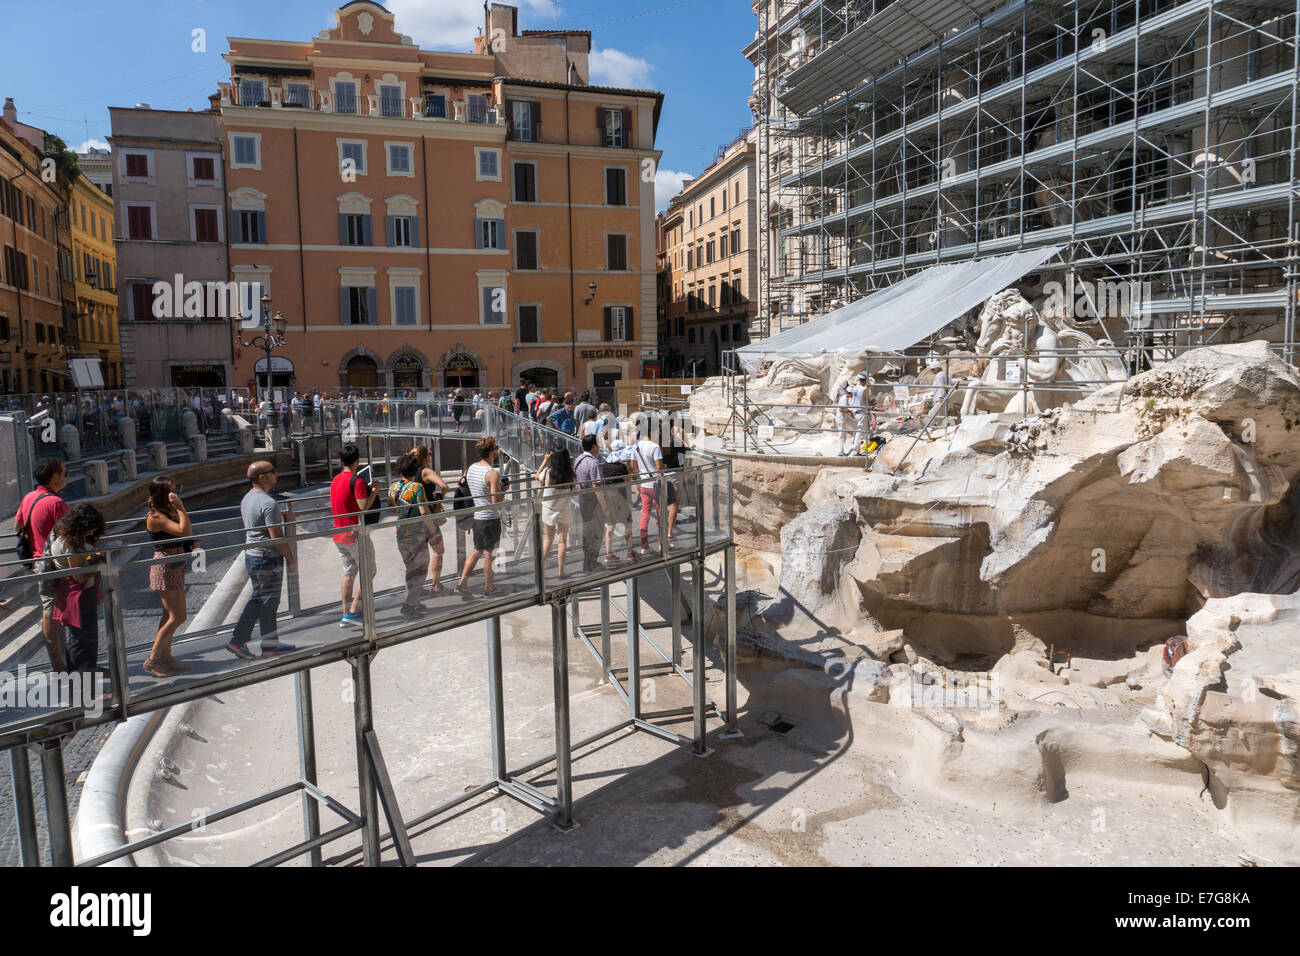 409d2d804f77 Italy  Restoration work at Trevi Fountain in Rome. Photo from 5th September  2014.